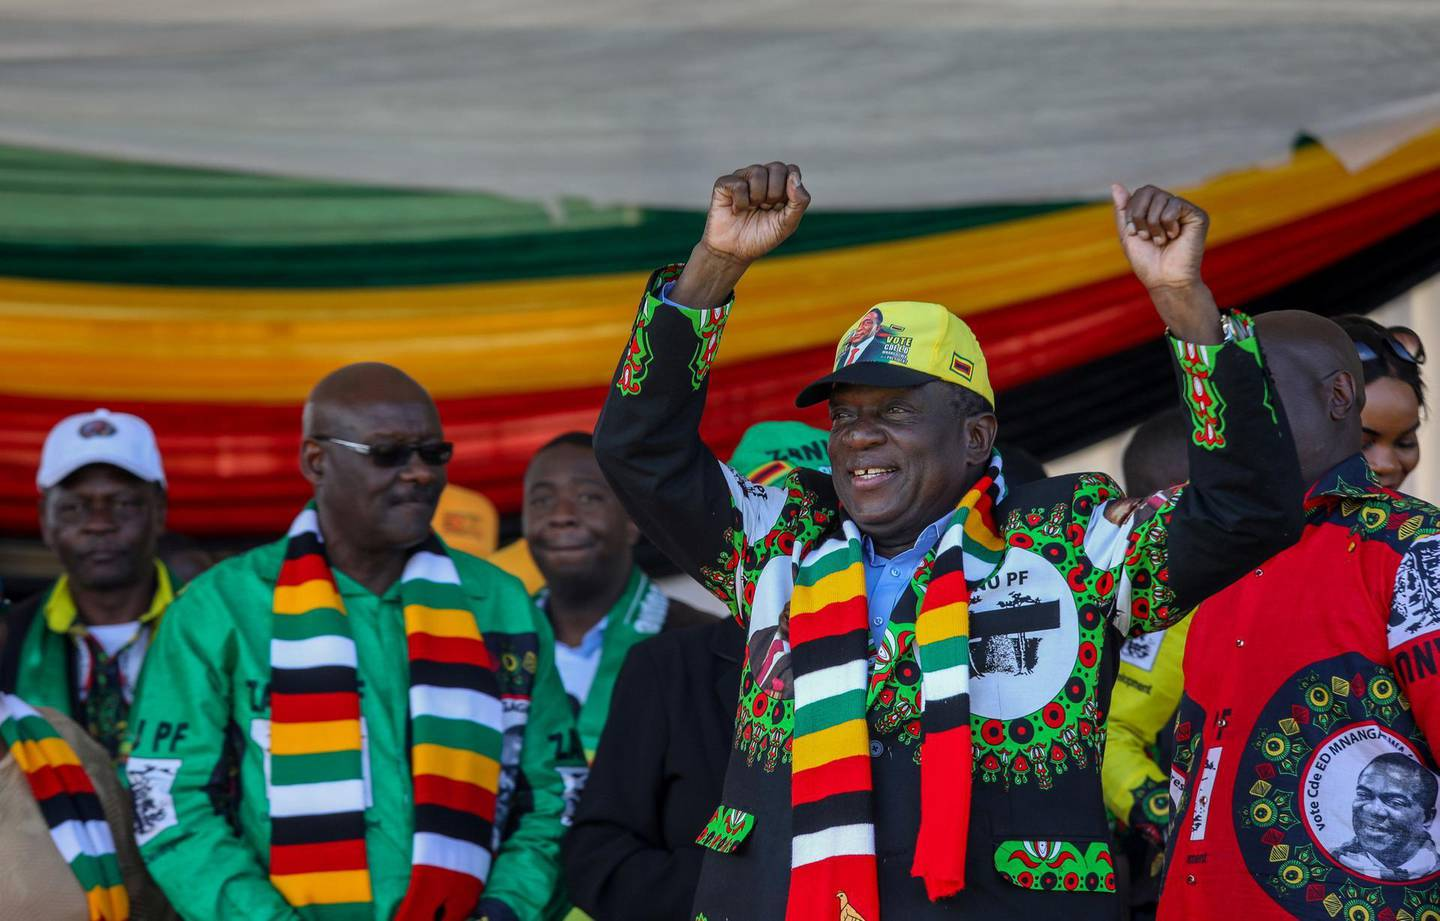 Zimbabwean President Emmerson Mnangagwa greets supporters before an explosion at an election rally in Bulawayo, Zimbabwe June 23, 2018. Tafadzwa Ufumeli/via REUTERS THIS IMAGE HAS BEEN SUPPLIED BY A THIRD PARTY. MANDATORY CREDIT. NO RESALES. NO ARCHIVES.